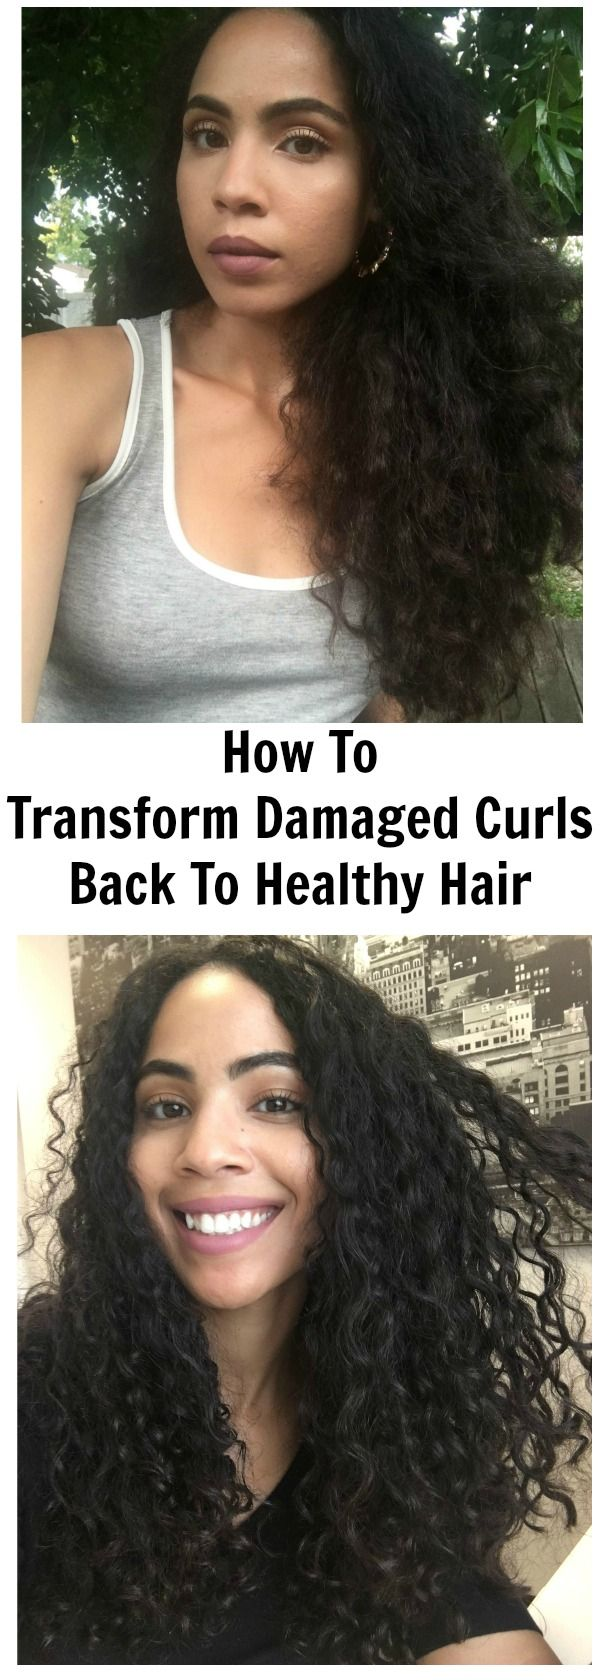 How To Get Rid Of Damaged Curly Hair Here Are 6 Basic Ways You Can Transform Damaged Curly Hair Damaged Curly Hair Curly Hair Styles Heat Damaged Natural Hair